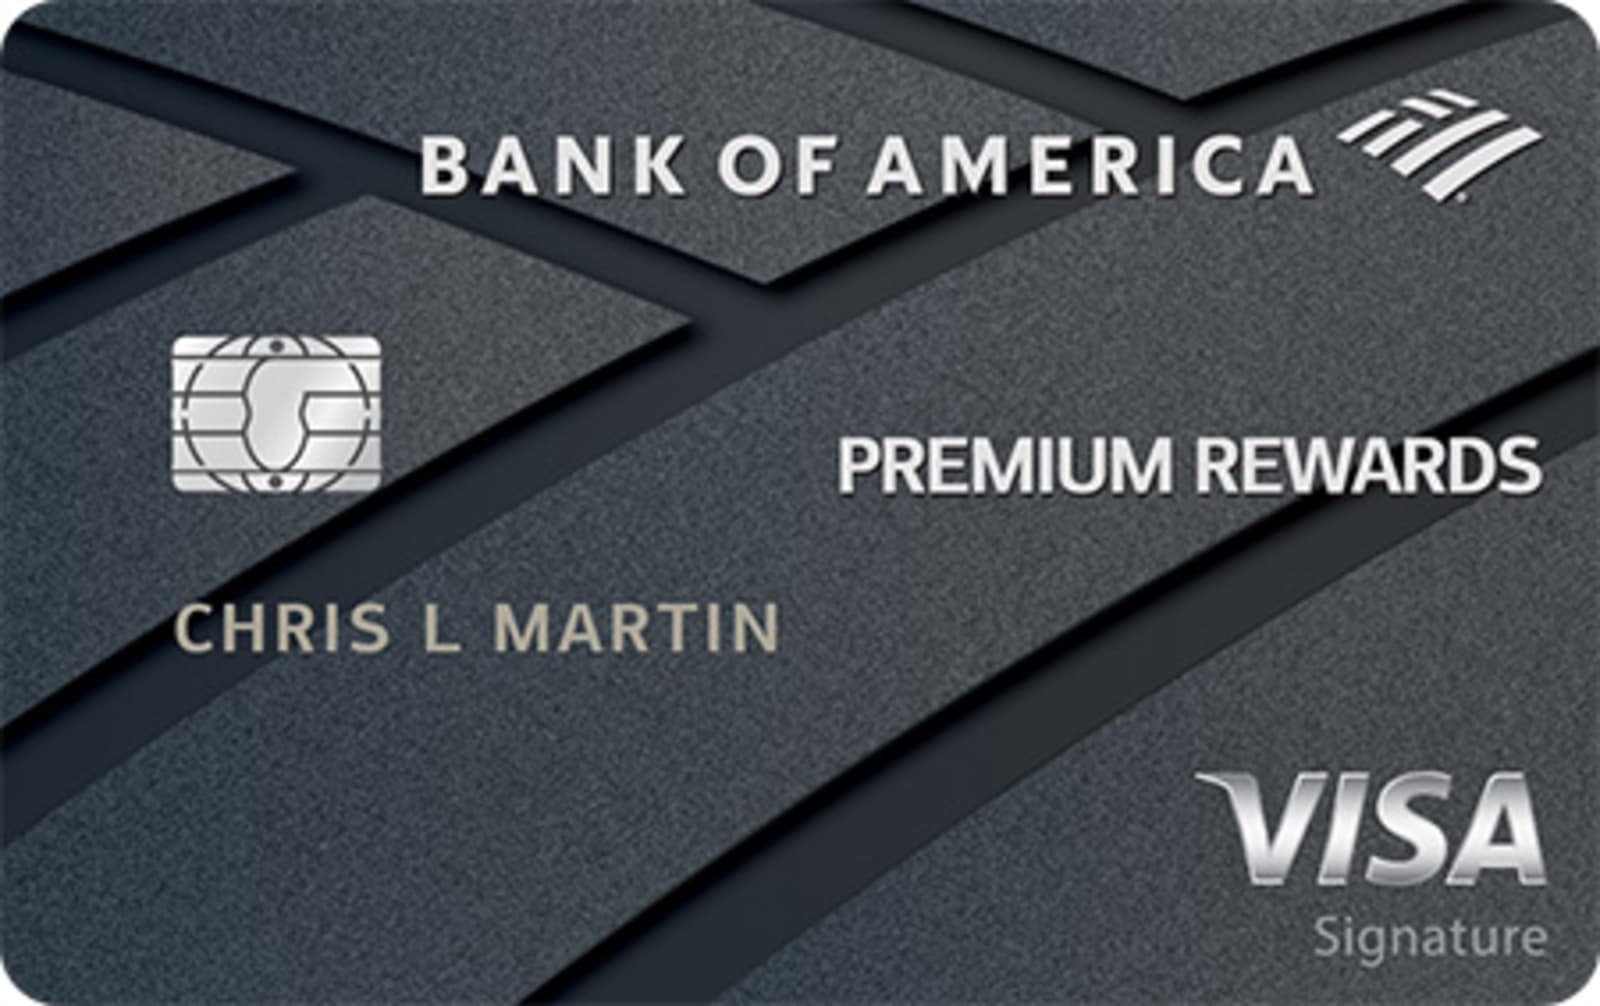 Best Bank of America Credit Cards of 2019 - ValuePenguin